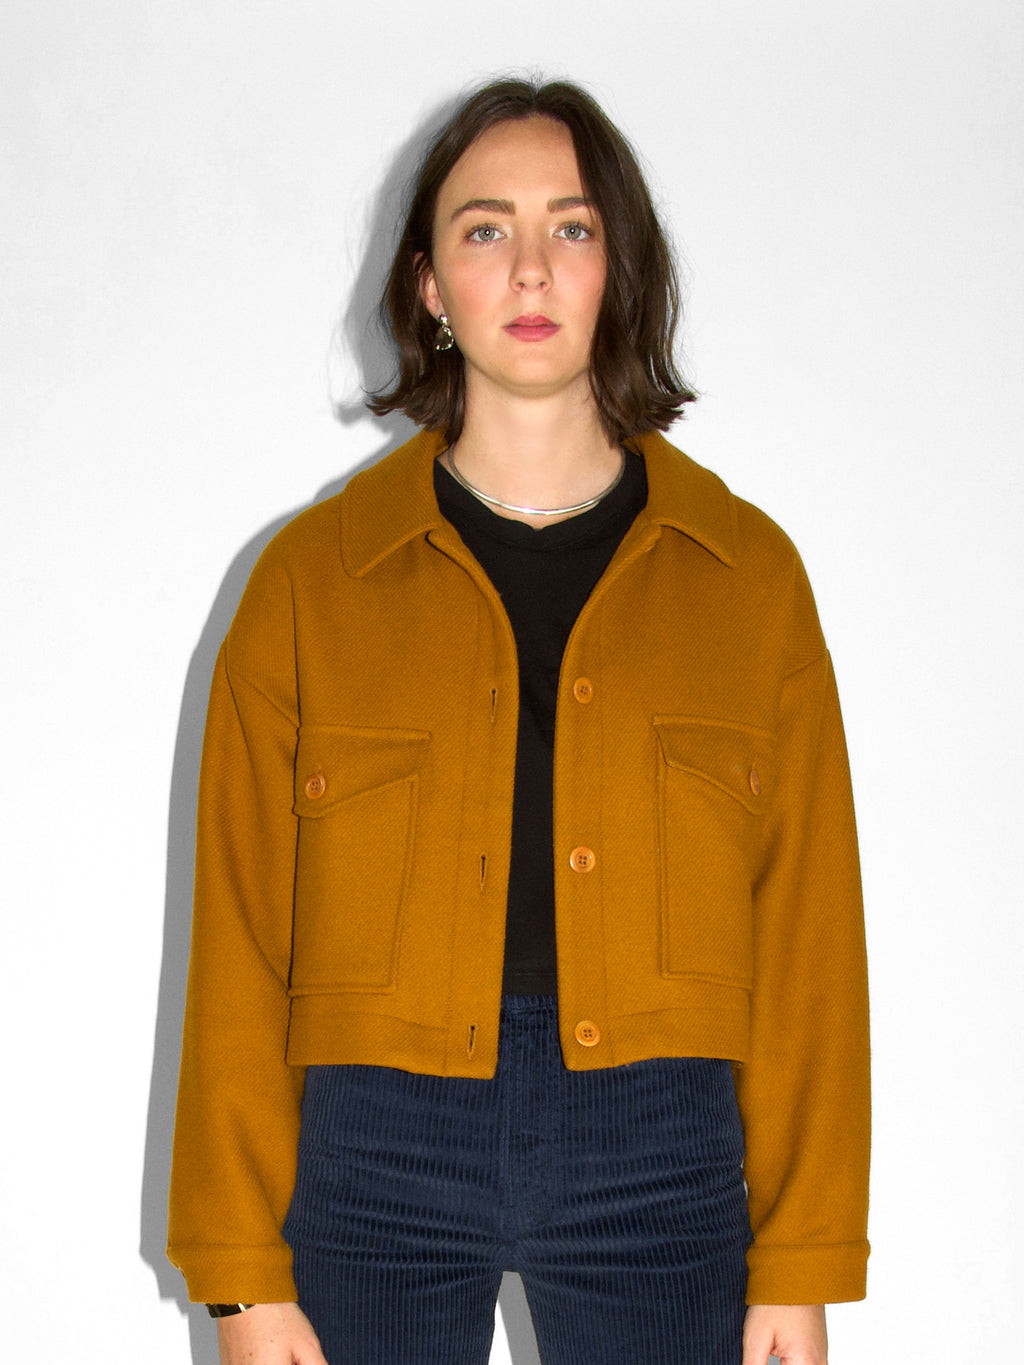 Rita Row - Jacket / Ochre